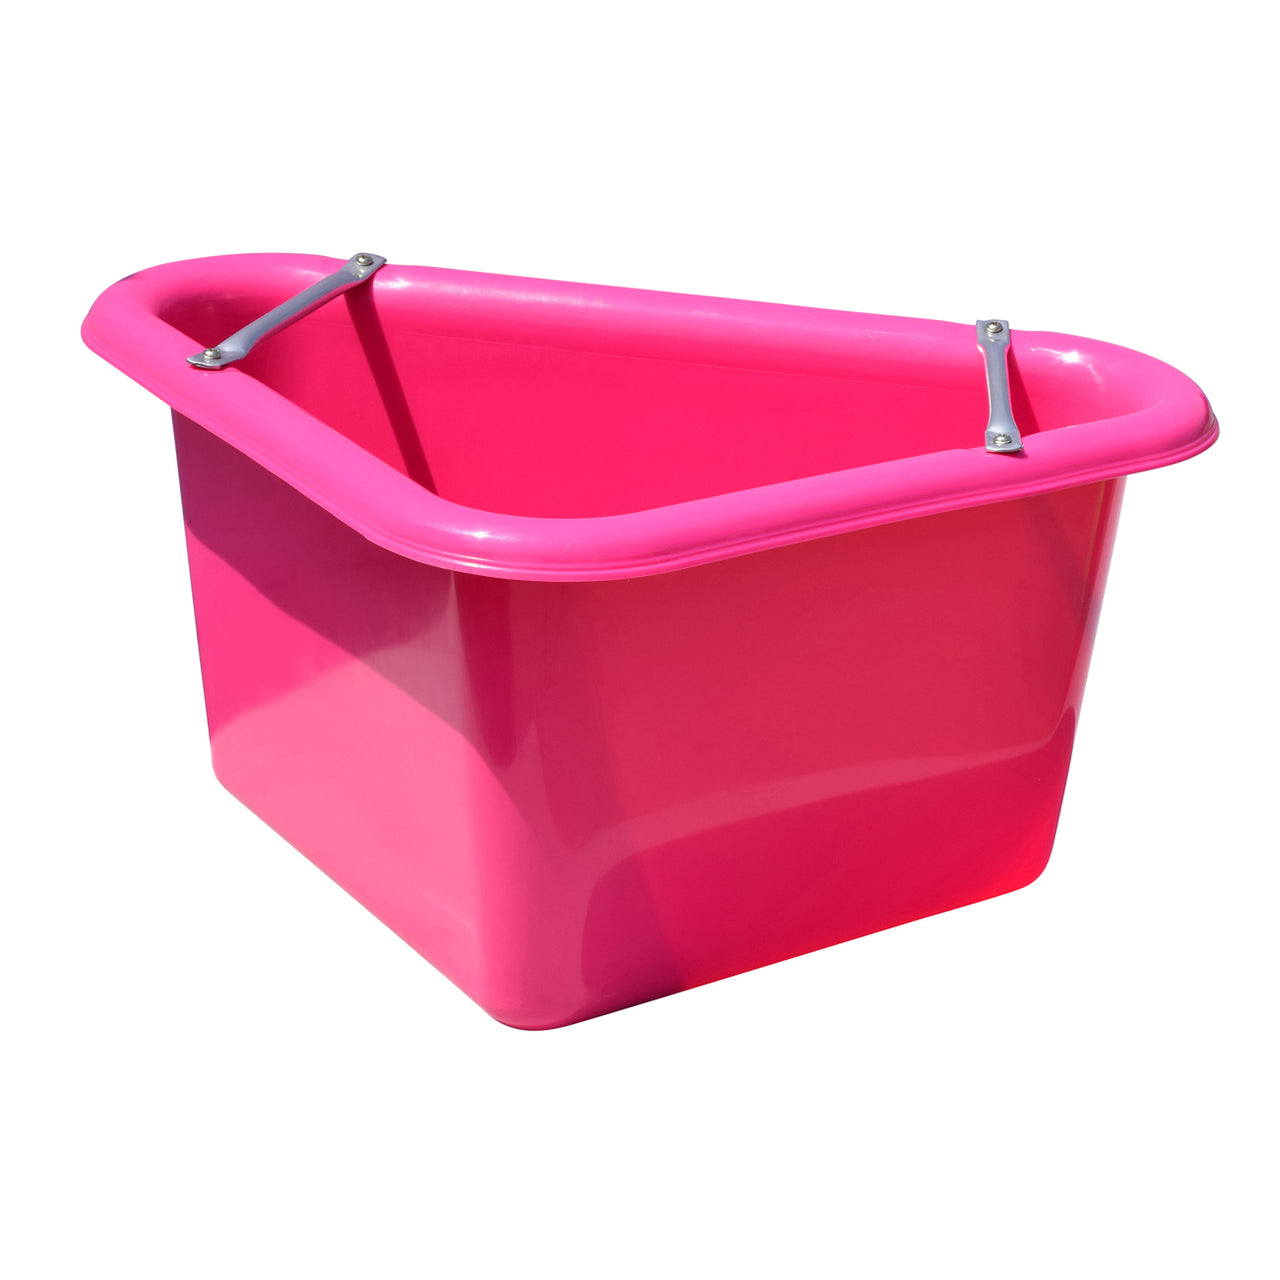 Tuff Stuff Corner Feeder 12 Gallon - Pink - Buckets Pails Feeders Scoops Tubs Bottles Tuff Stuff - Canada